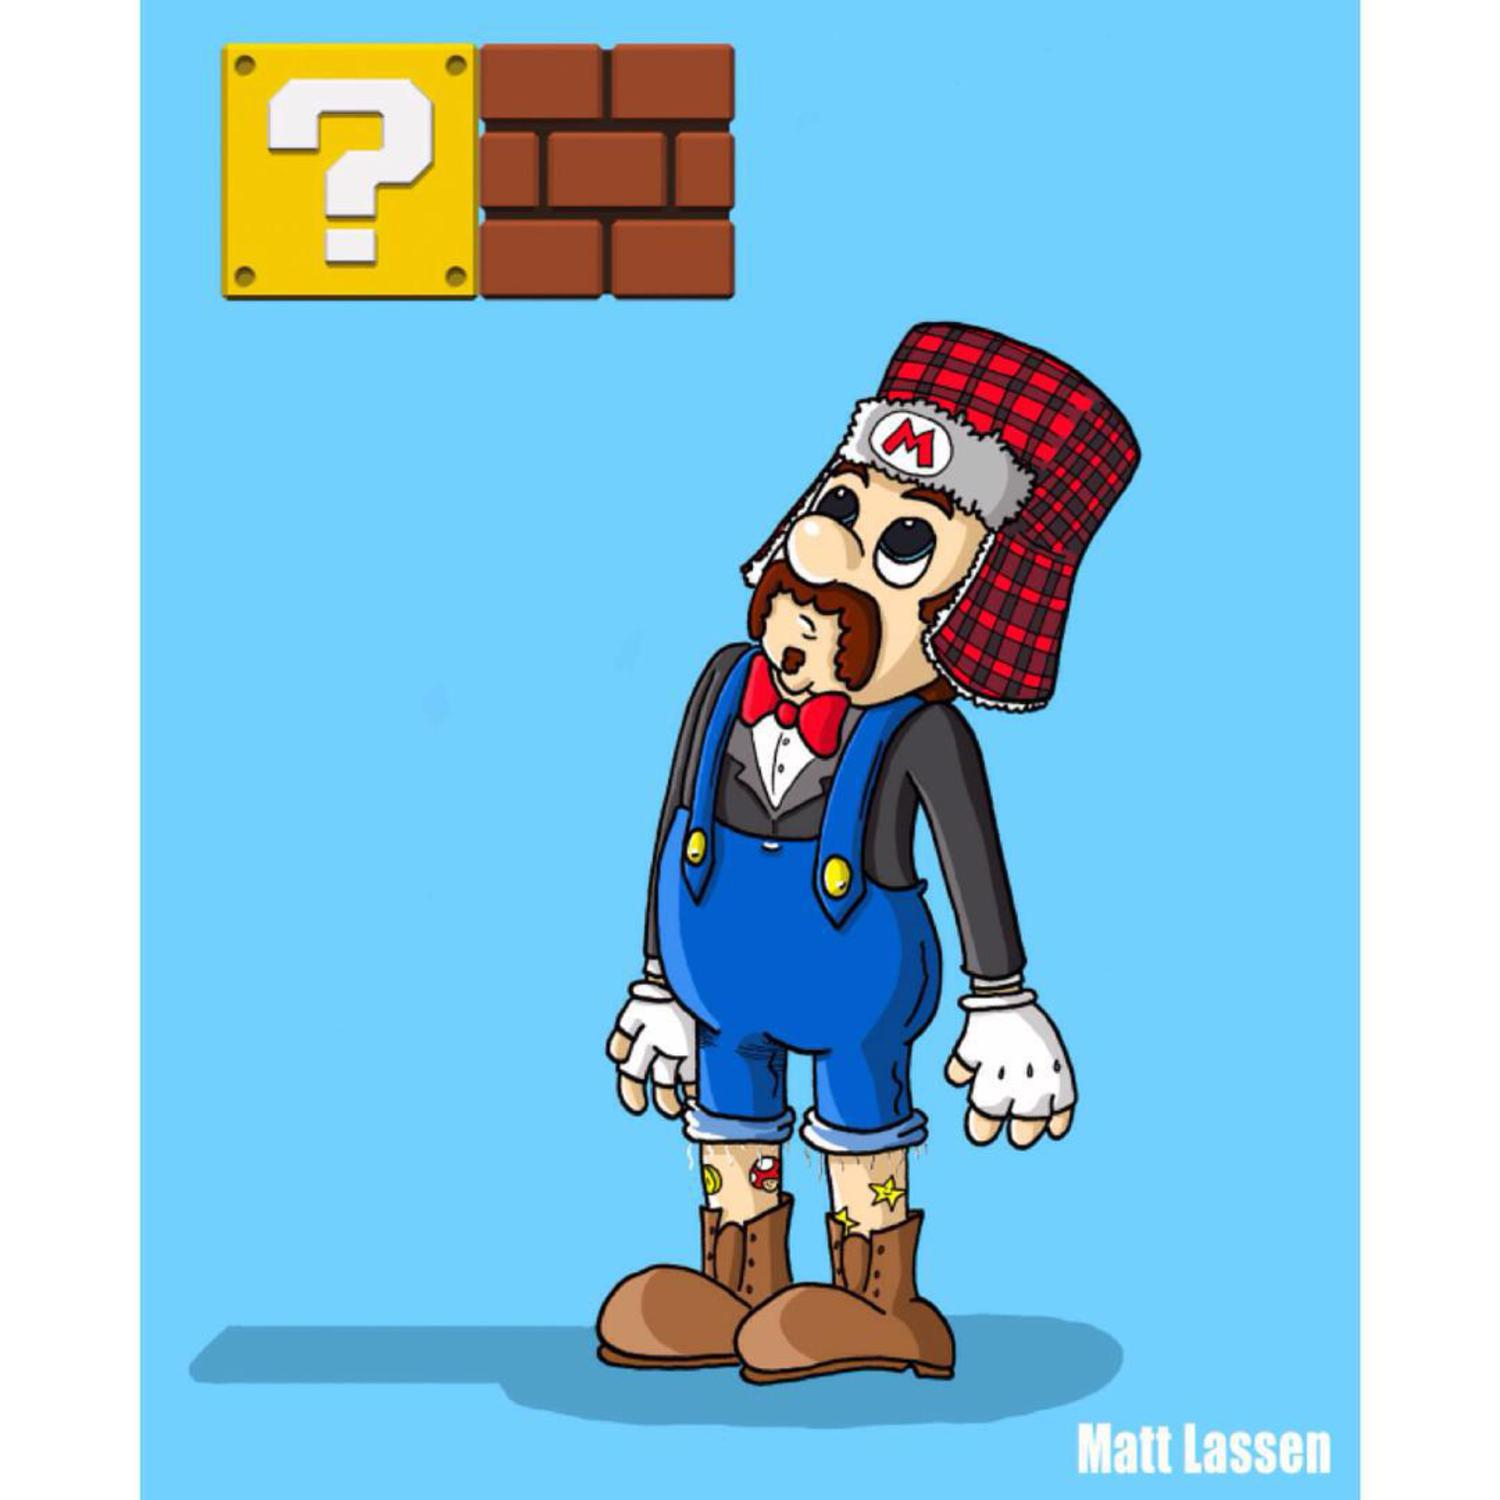 Hipster Super Mario (No. 5 in a series) #cartoon #nintendo #supermario #hipster #art #illustration #gaming #gamer #videogames #tattoos